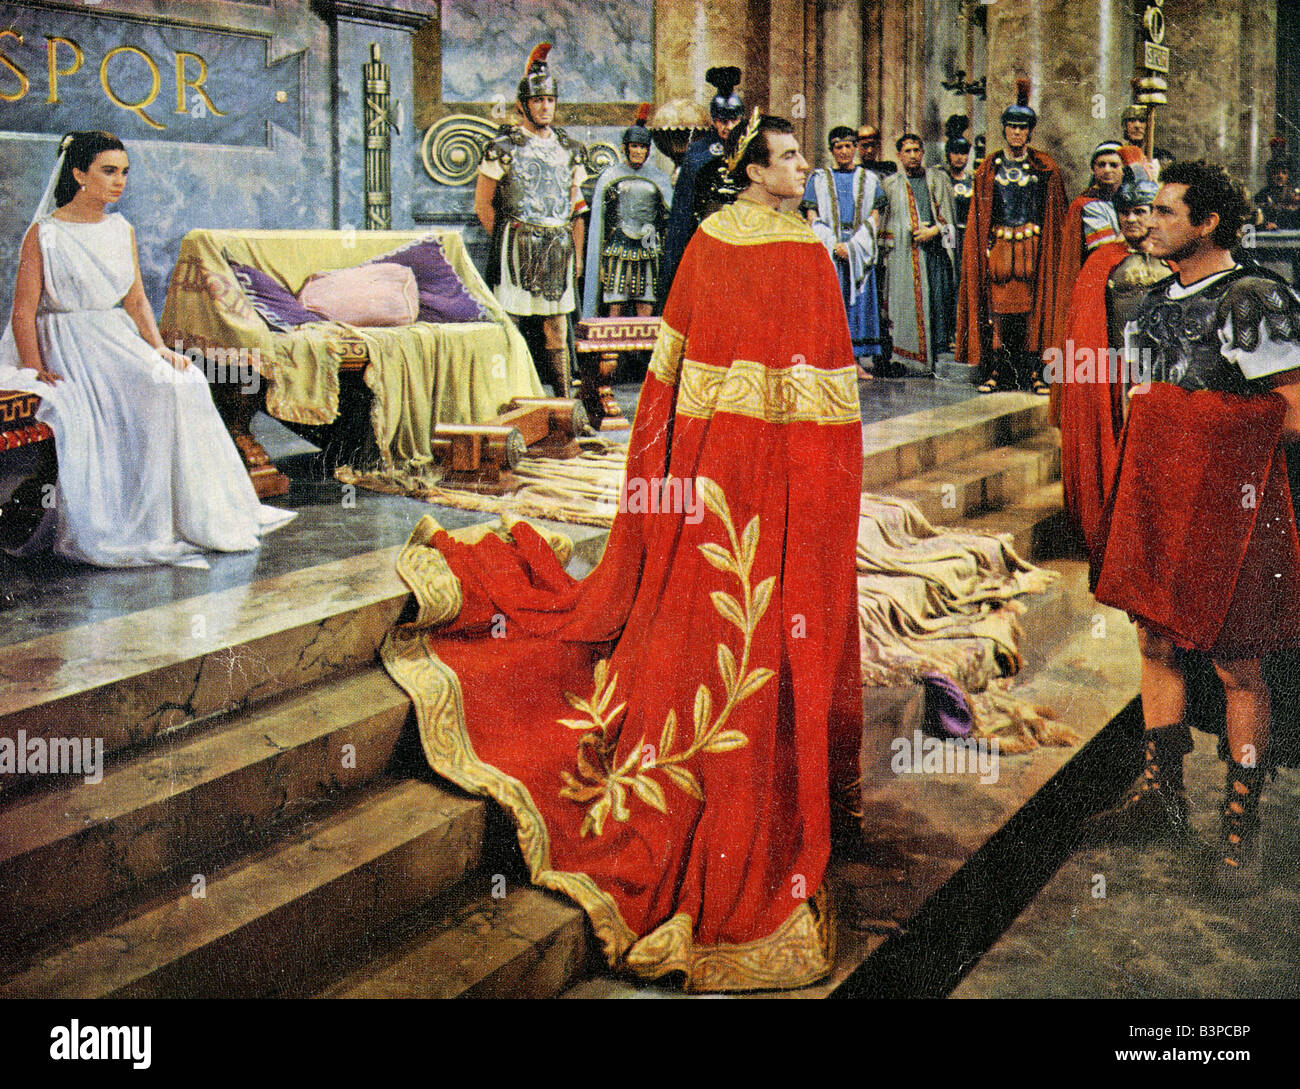 the robe 1953 tcf film with jean simmons jay robinson as